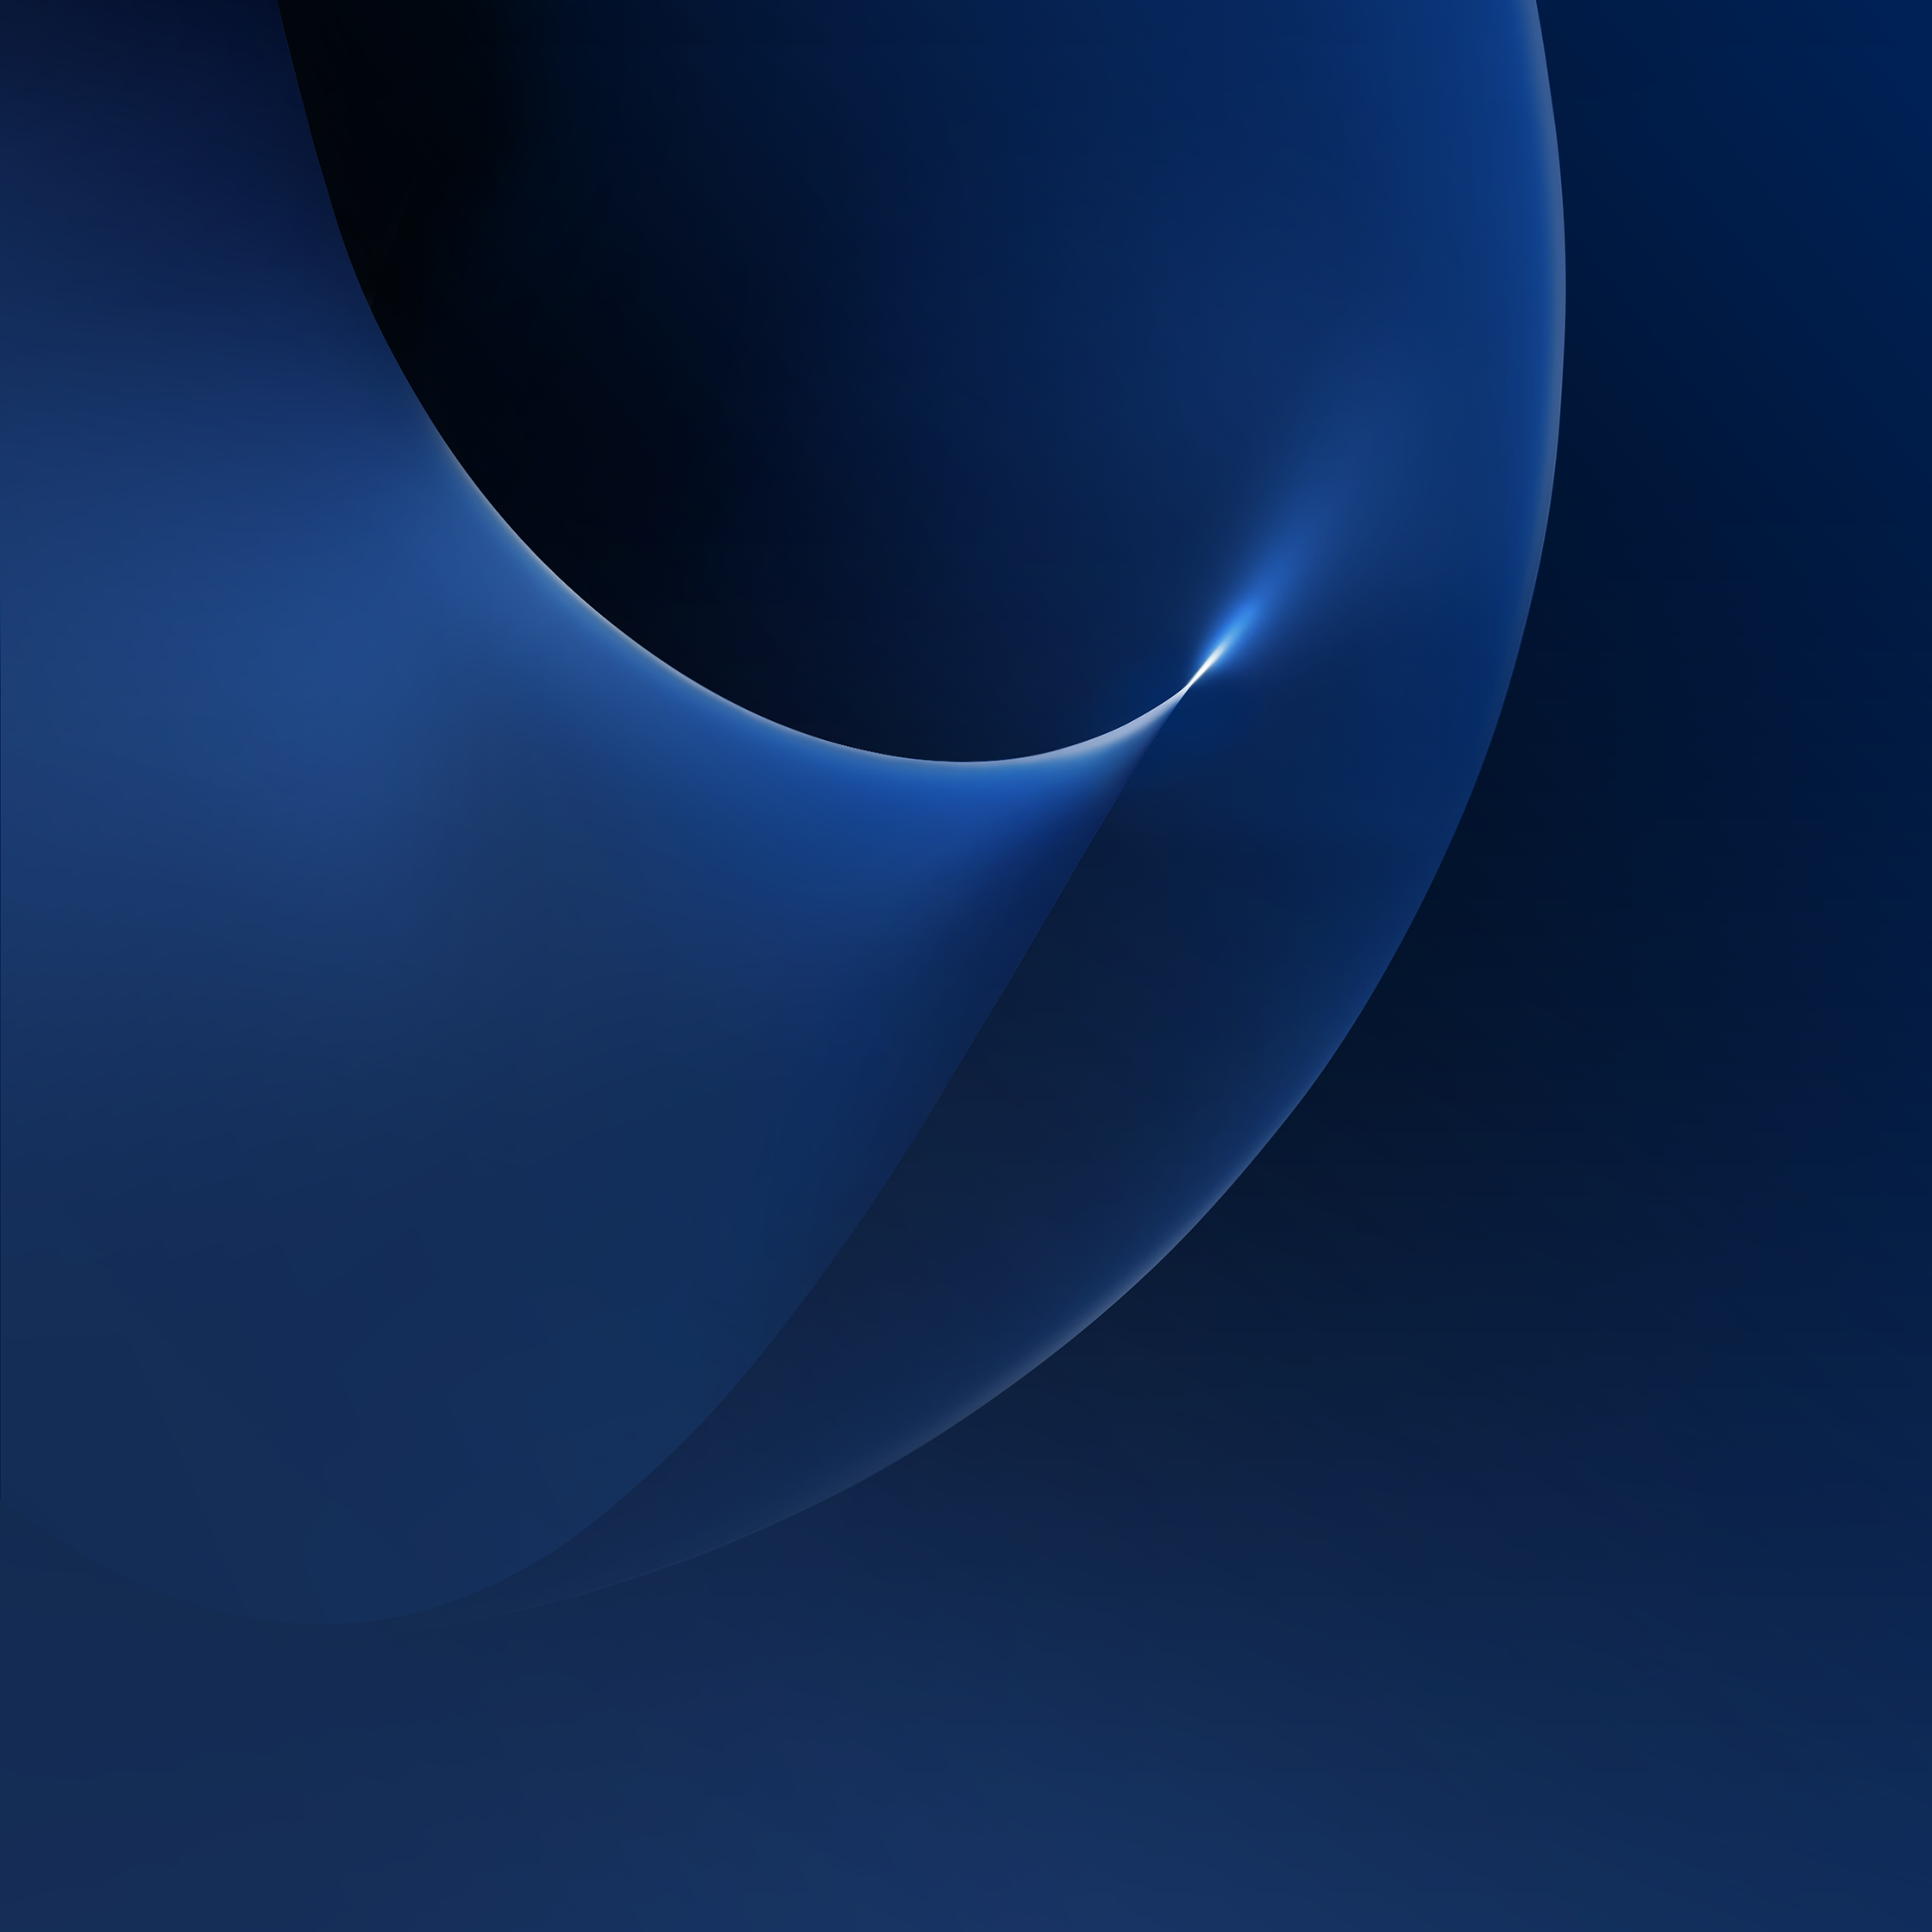 Alleged Galaxy S7 Edge wallpapers leak Get them here 2240x2240